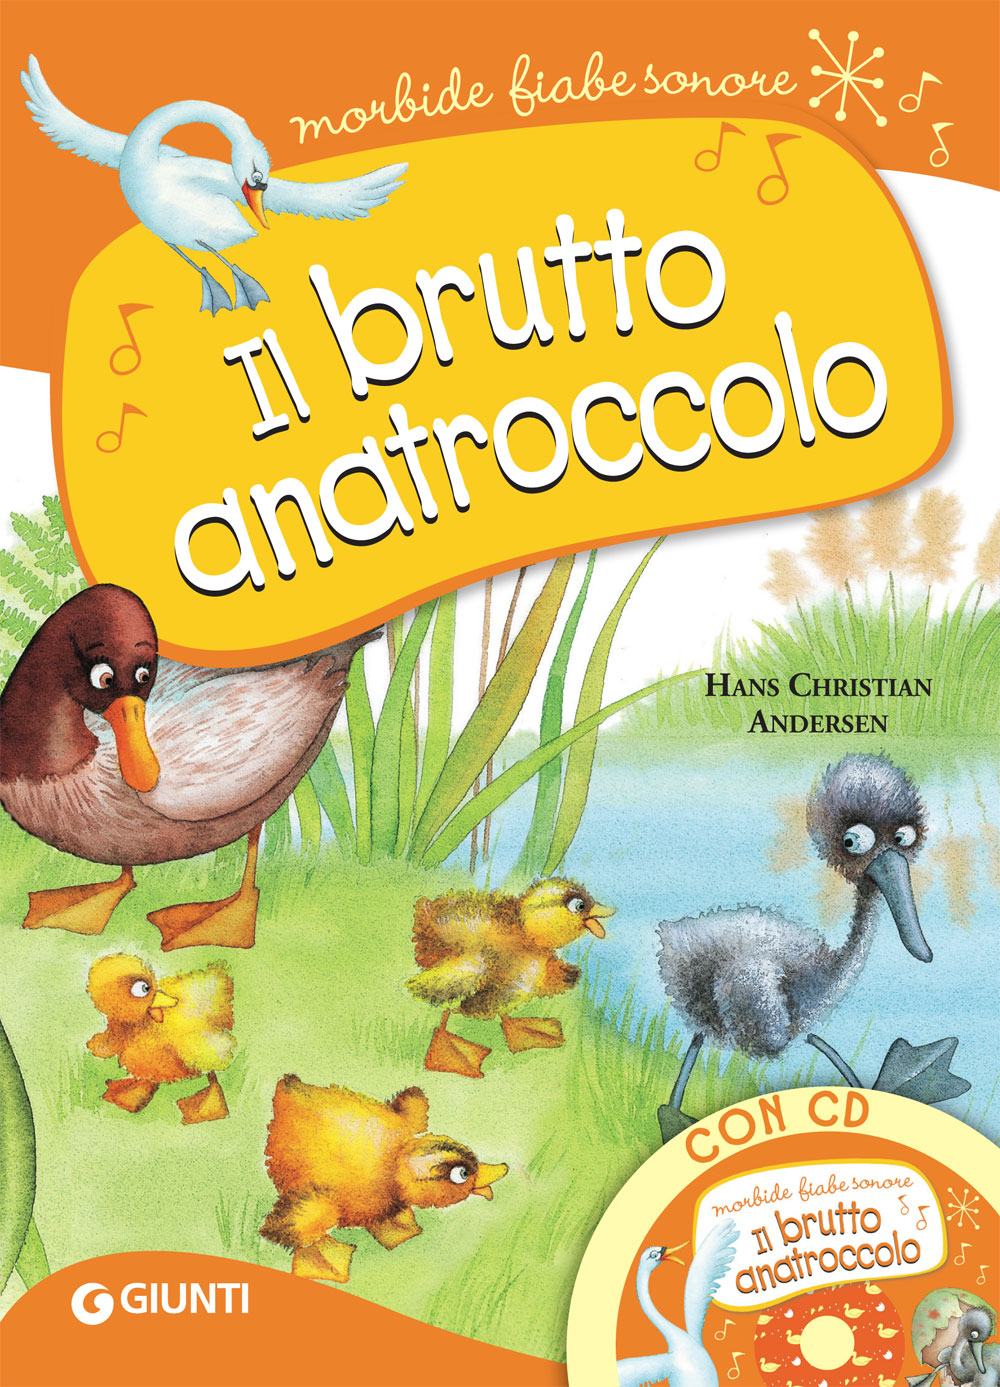 Il brutto anatroccolo (con CD)